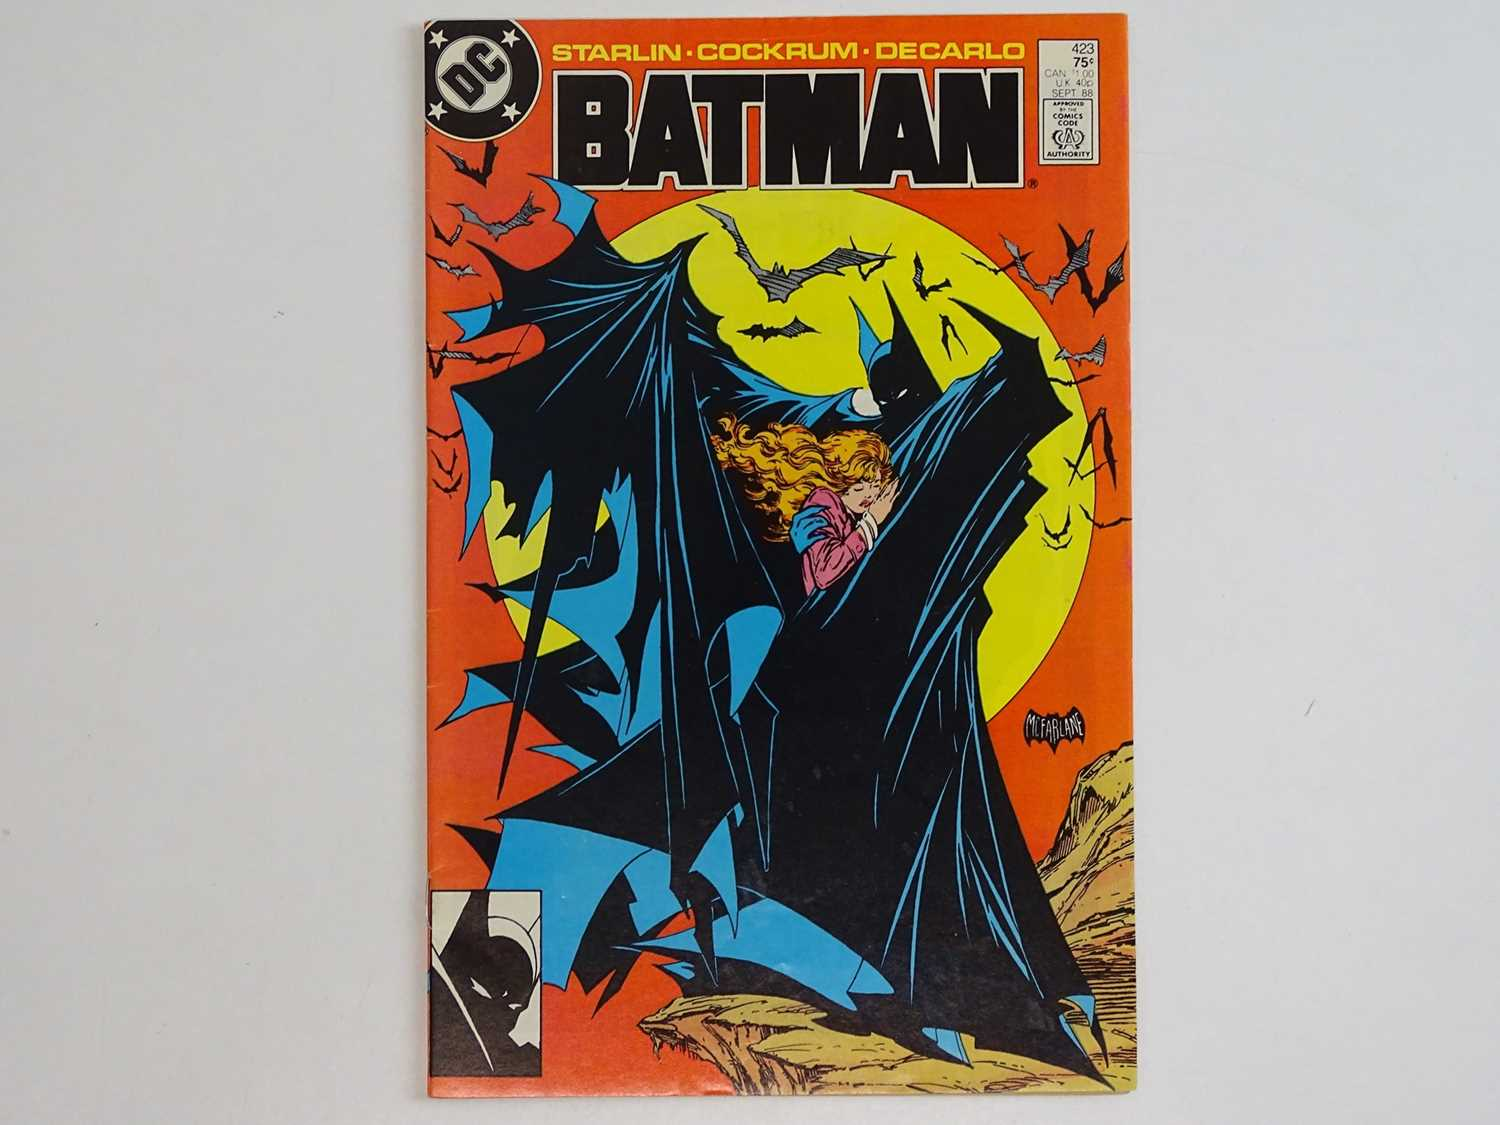 BATMAN #423 - (1988 - DC) - Classic Batman cover by Todd McFarlane with Dave Cockrum interior